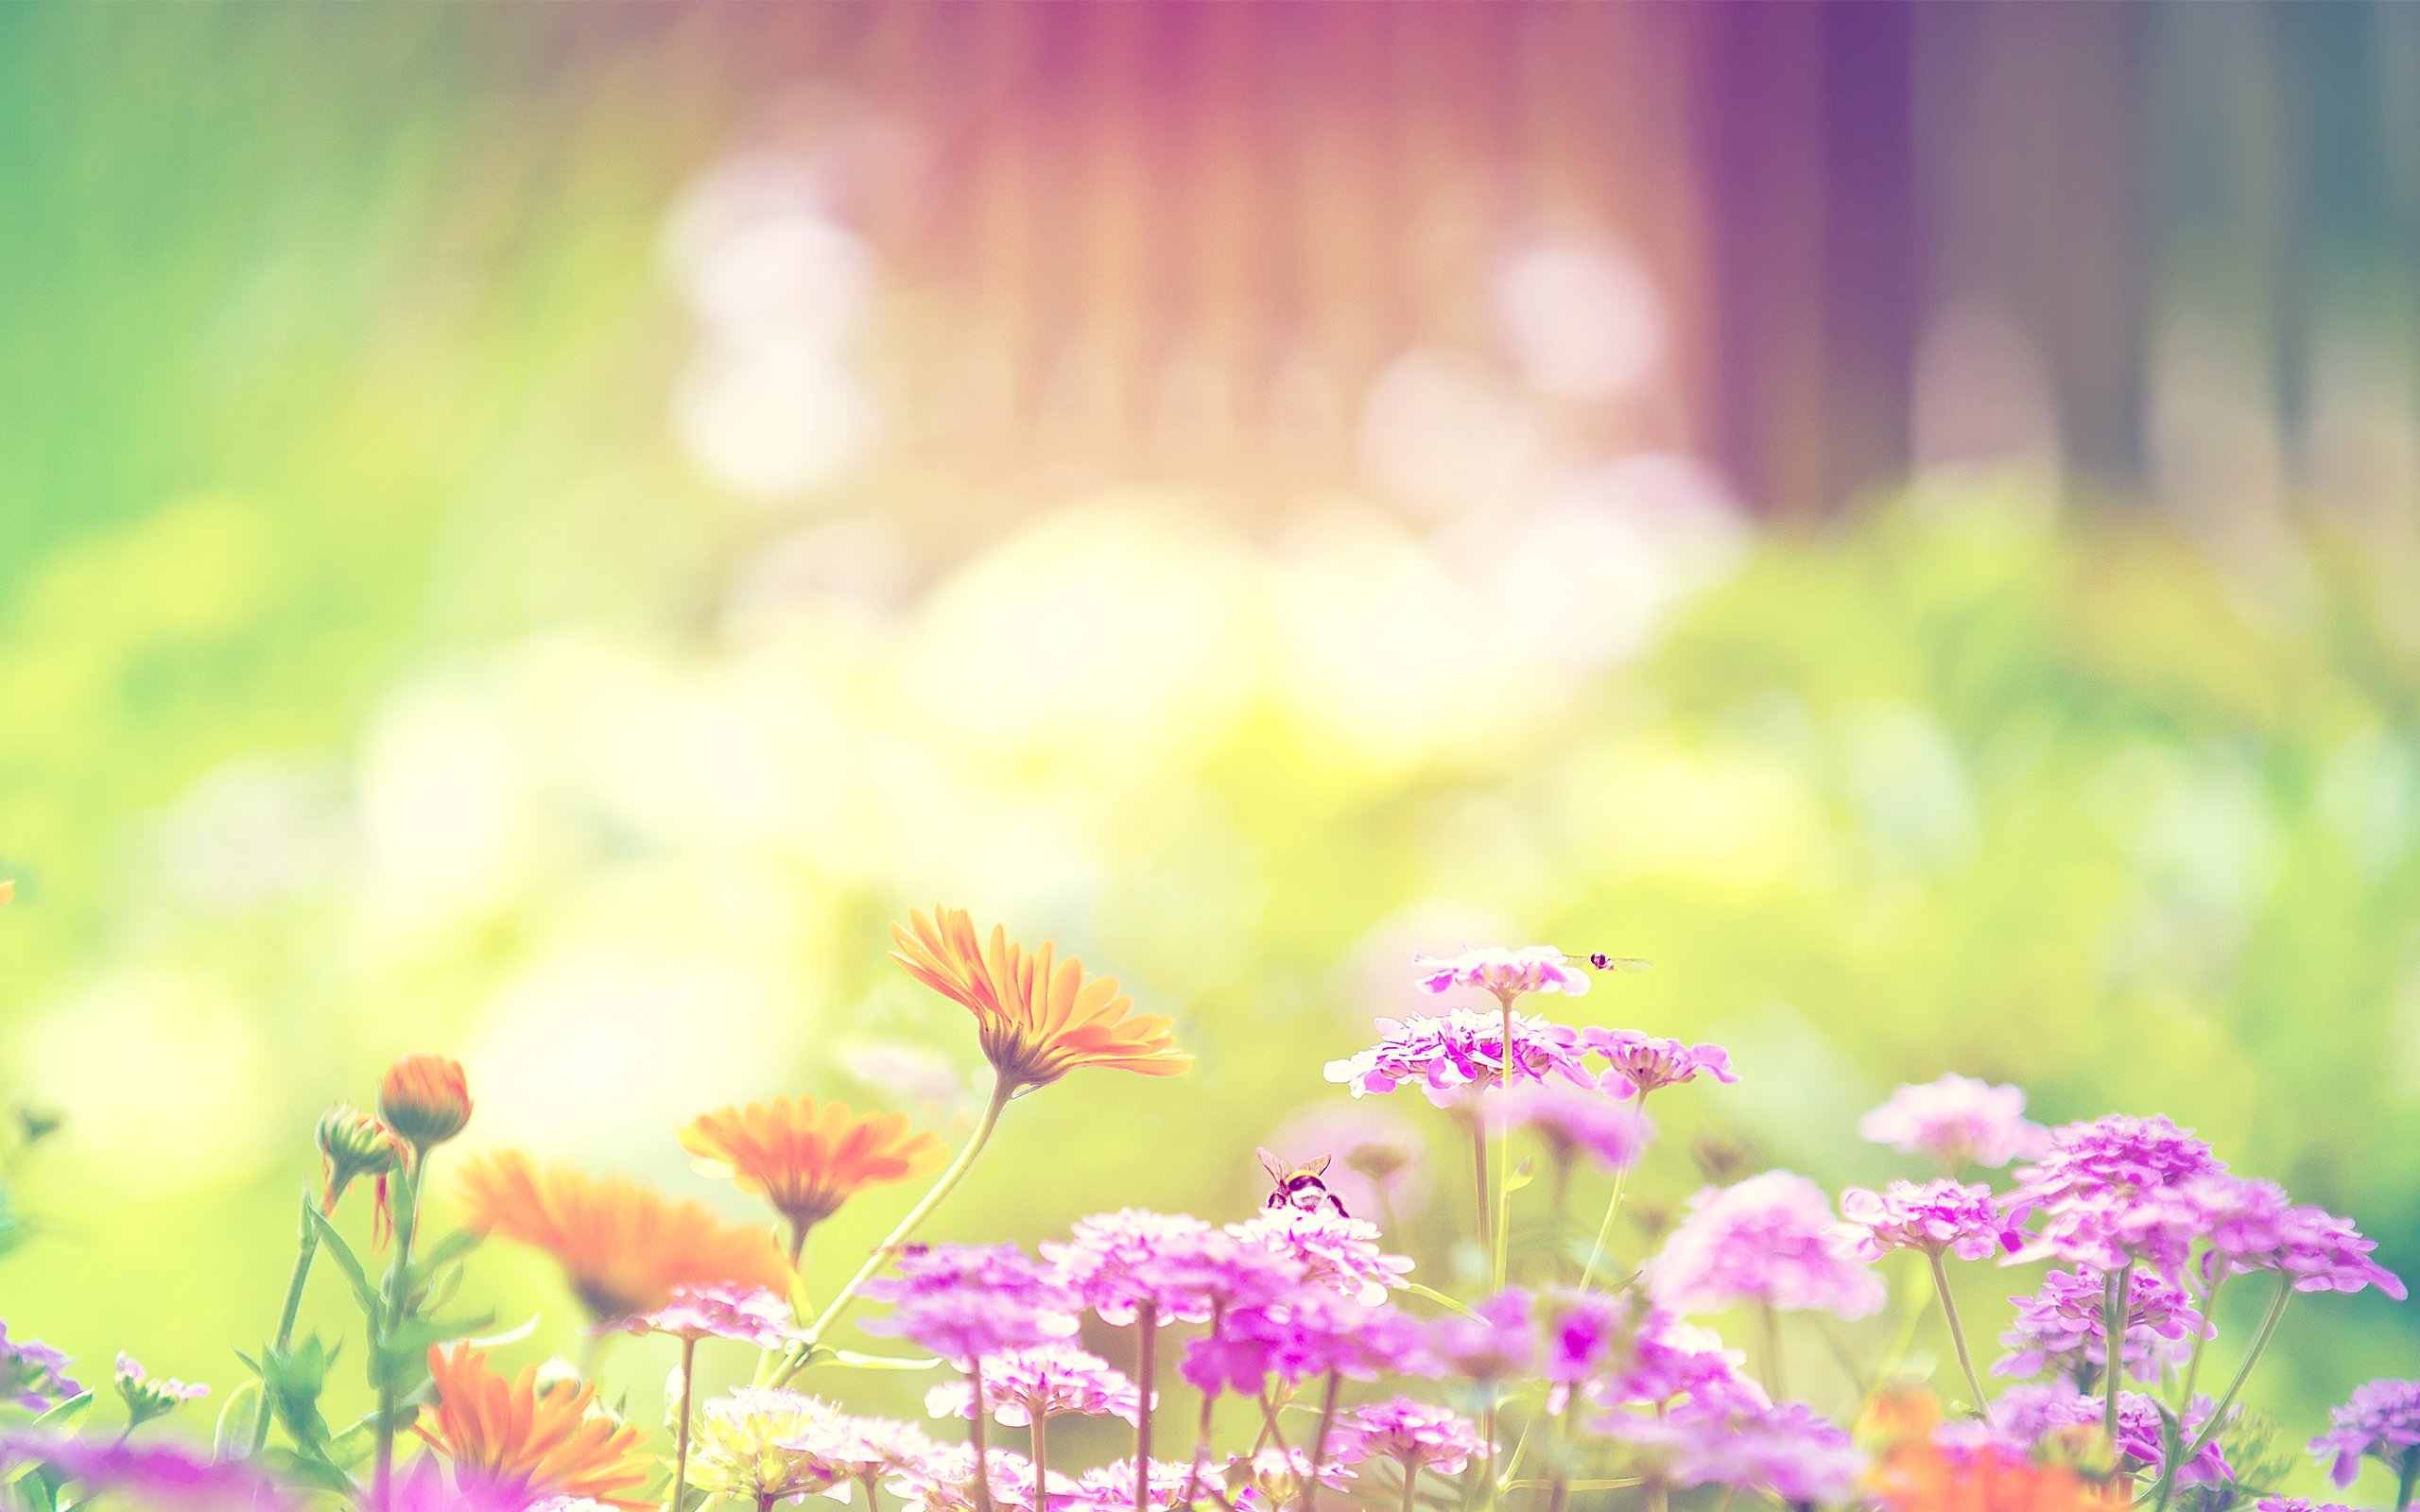 Spring Flowers Background wallpaper 2560x1600 83366 2560x1600